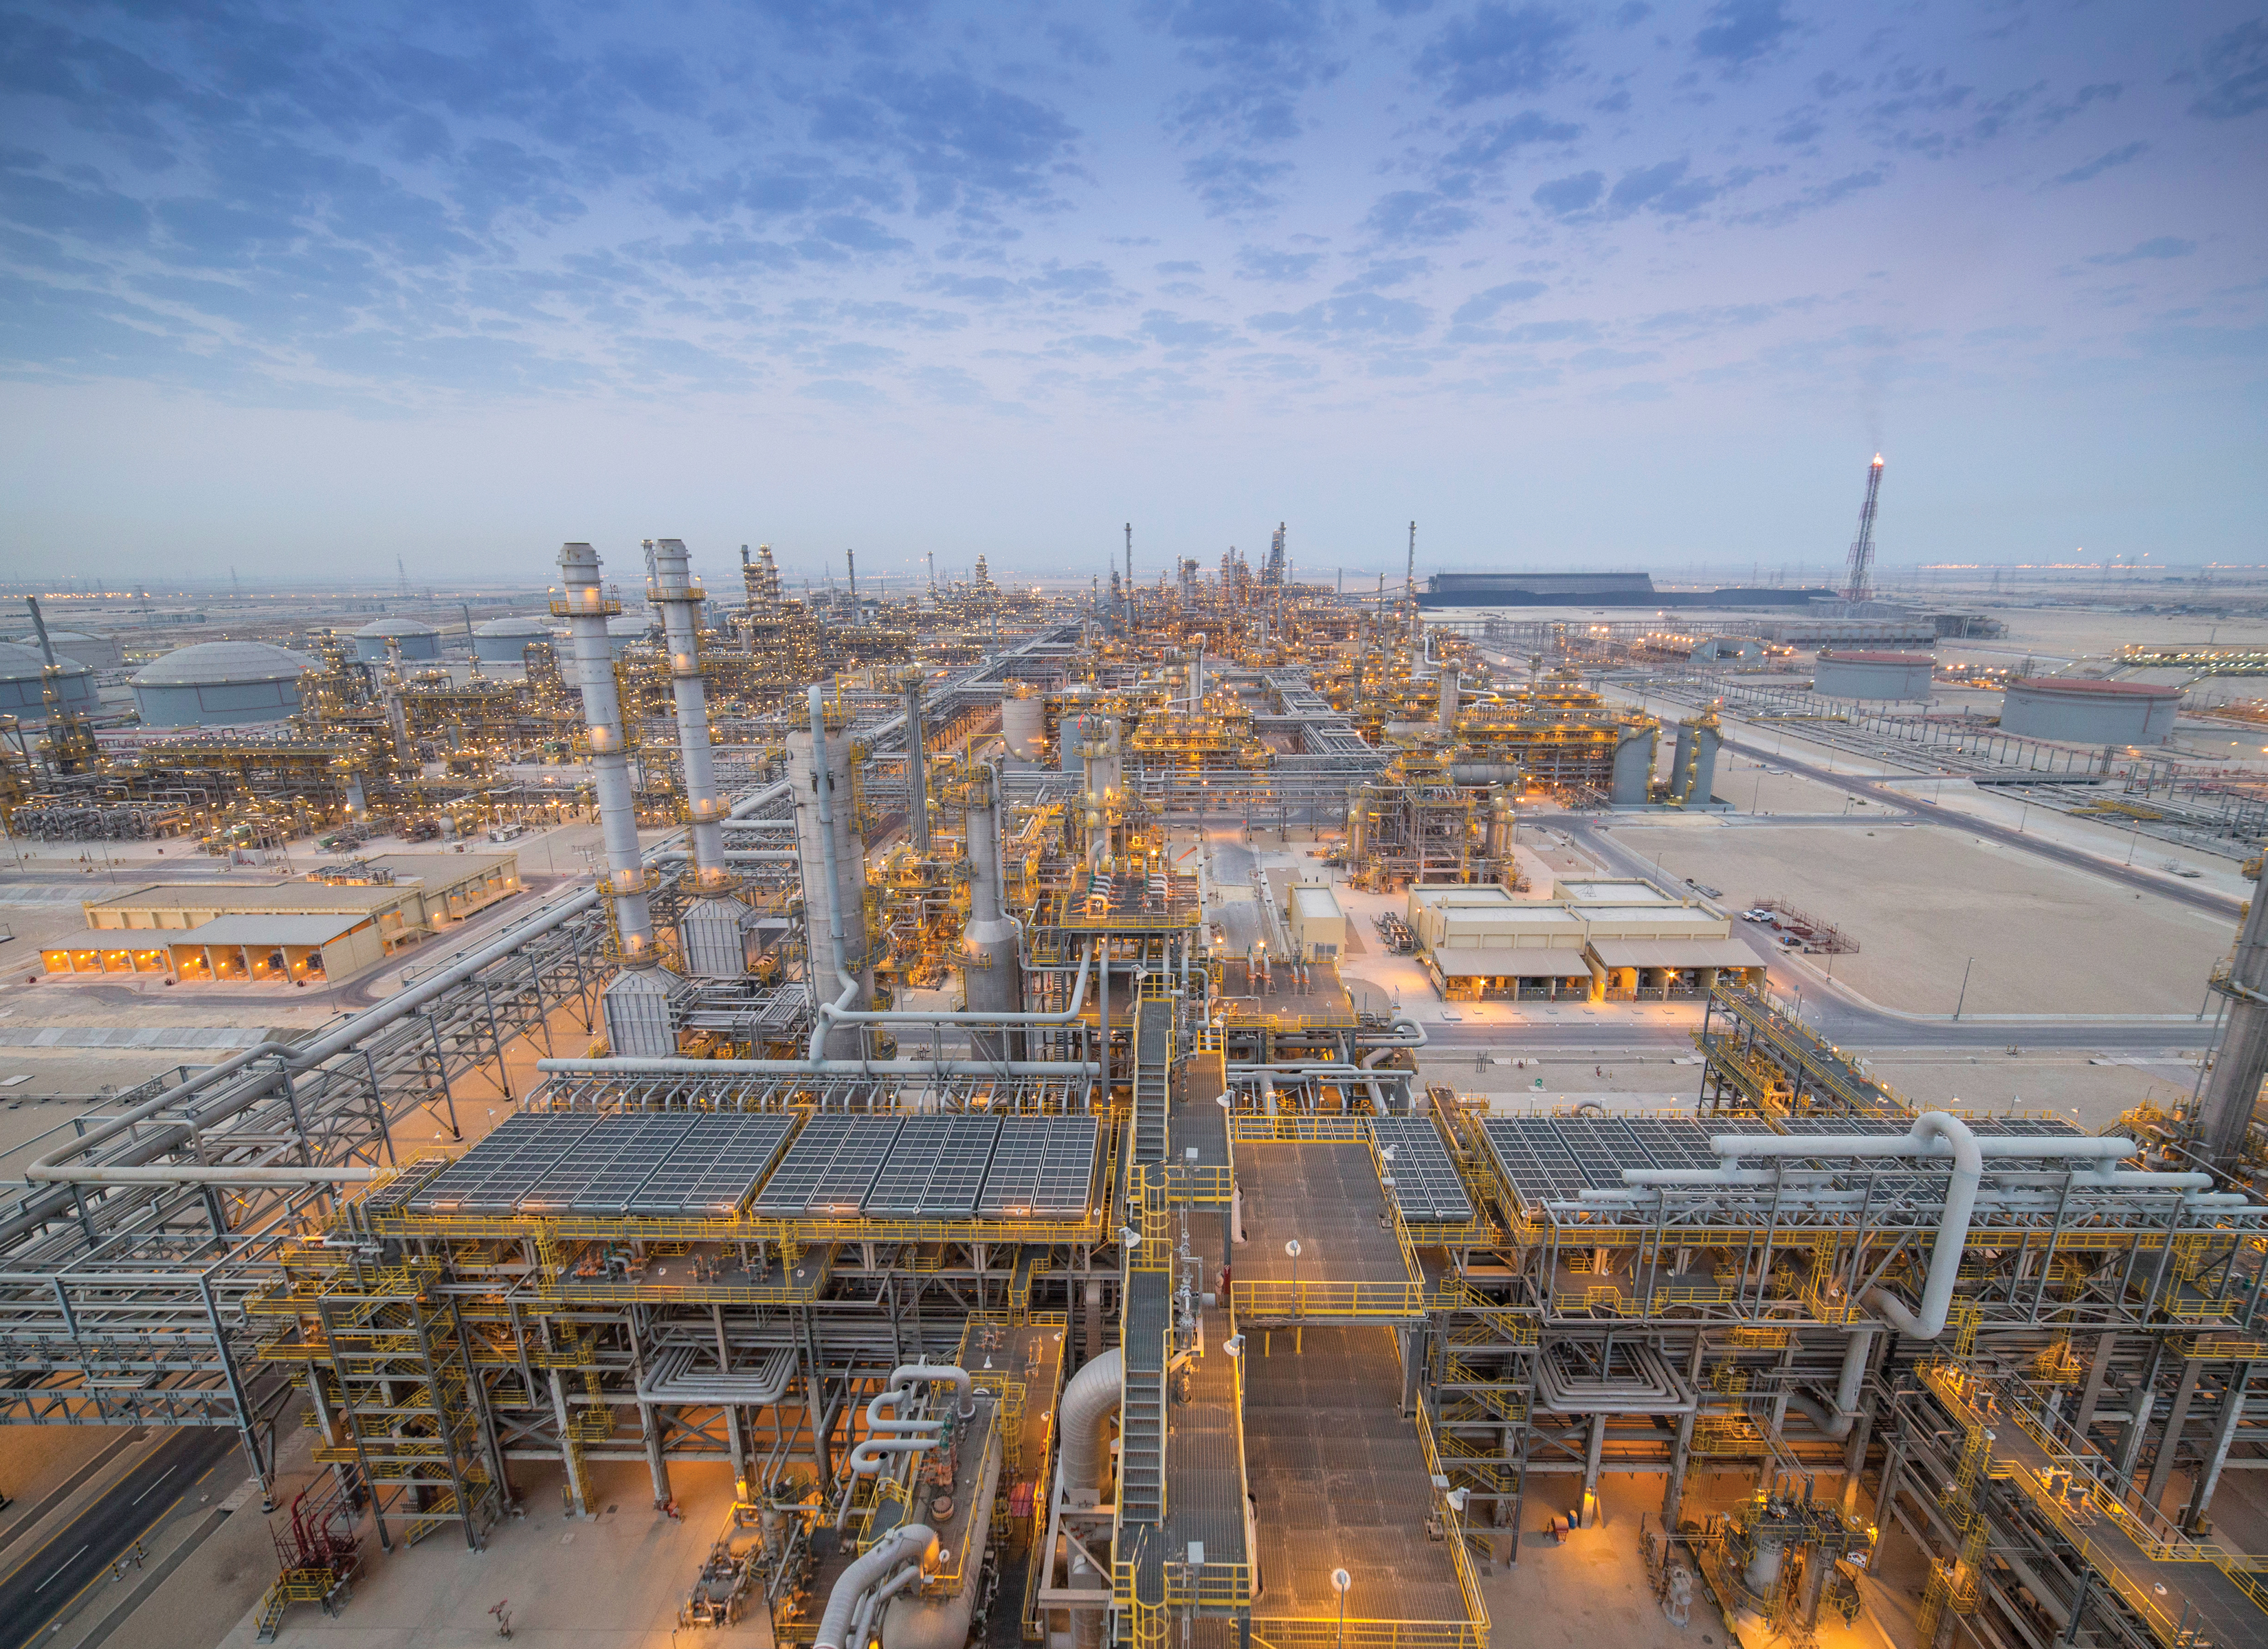 Online Exclusive: Downstream expansions rev Saudi Aramco's growth engine